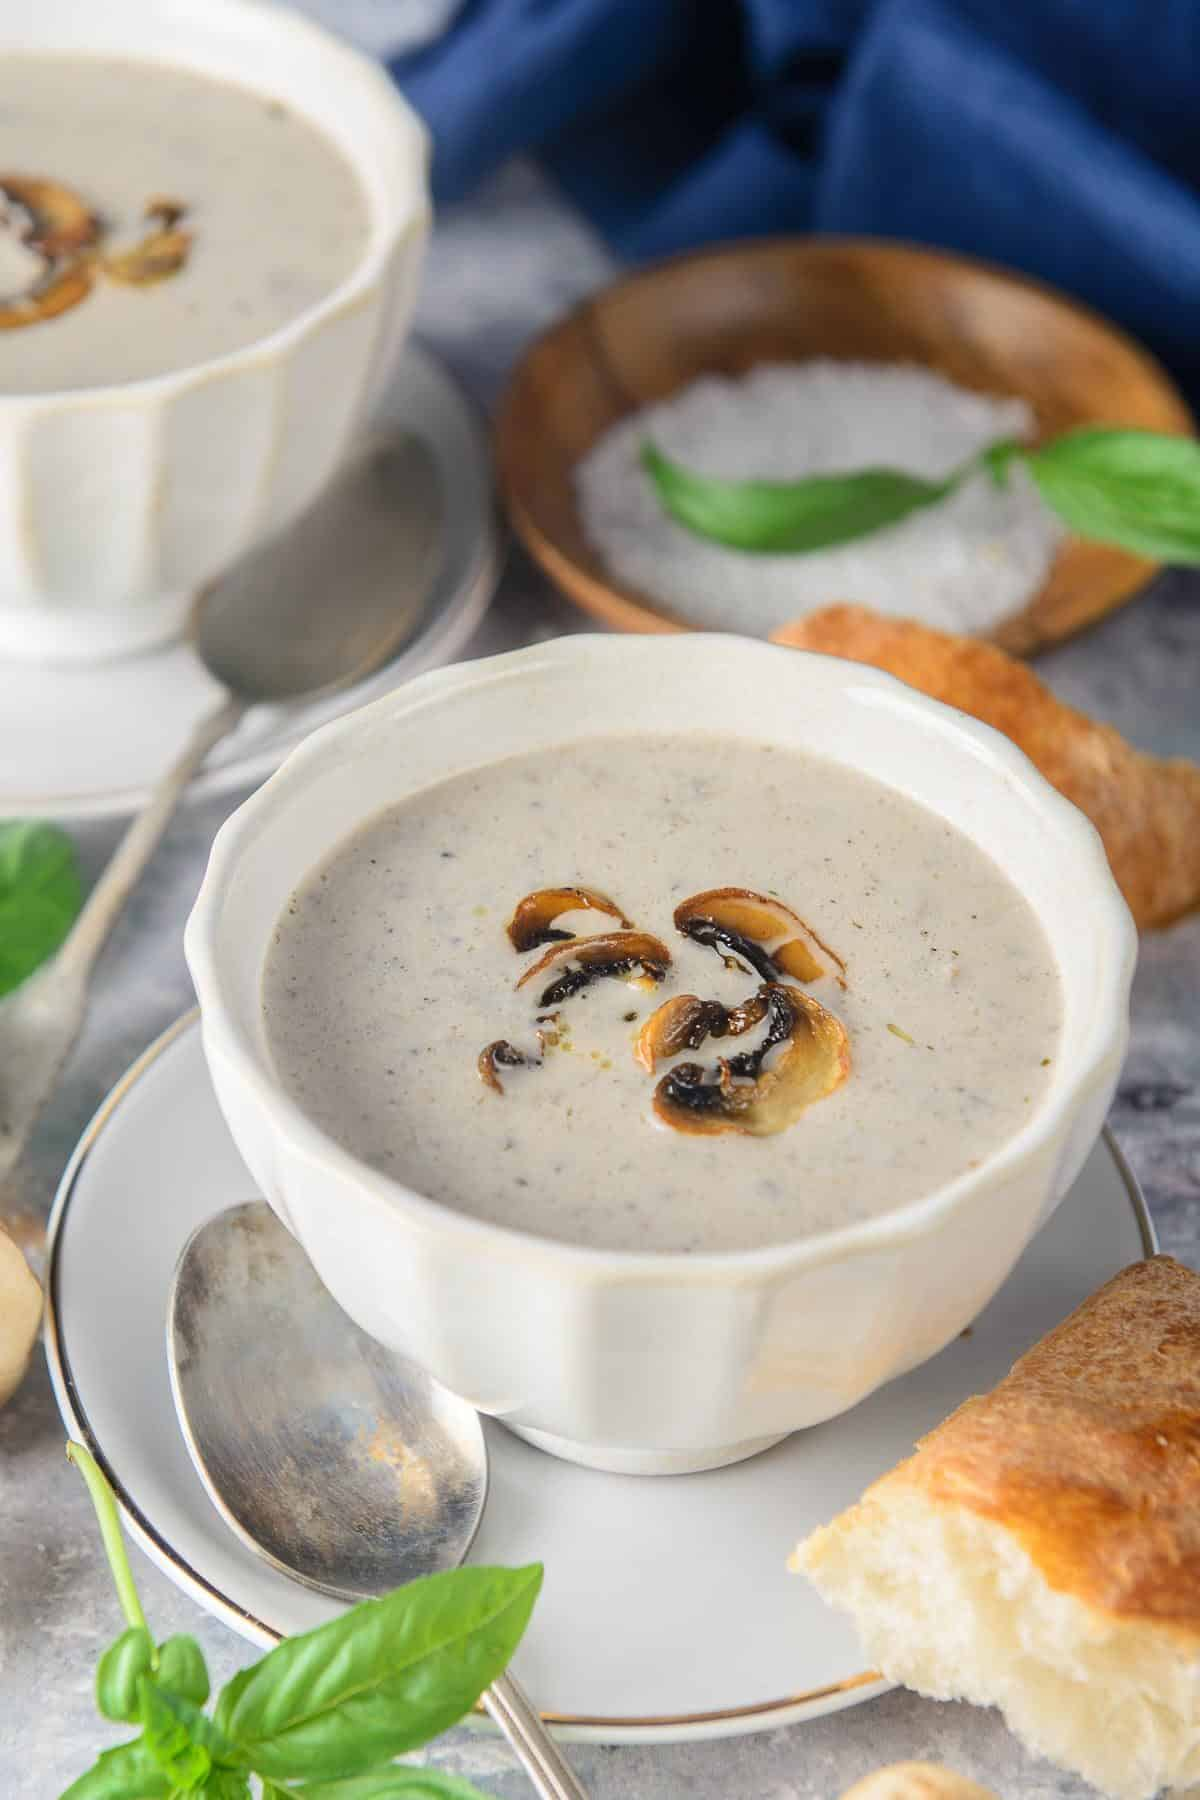 Homemade cream of mushroom soup served in a bowl.